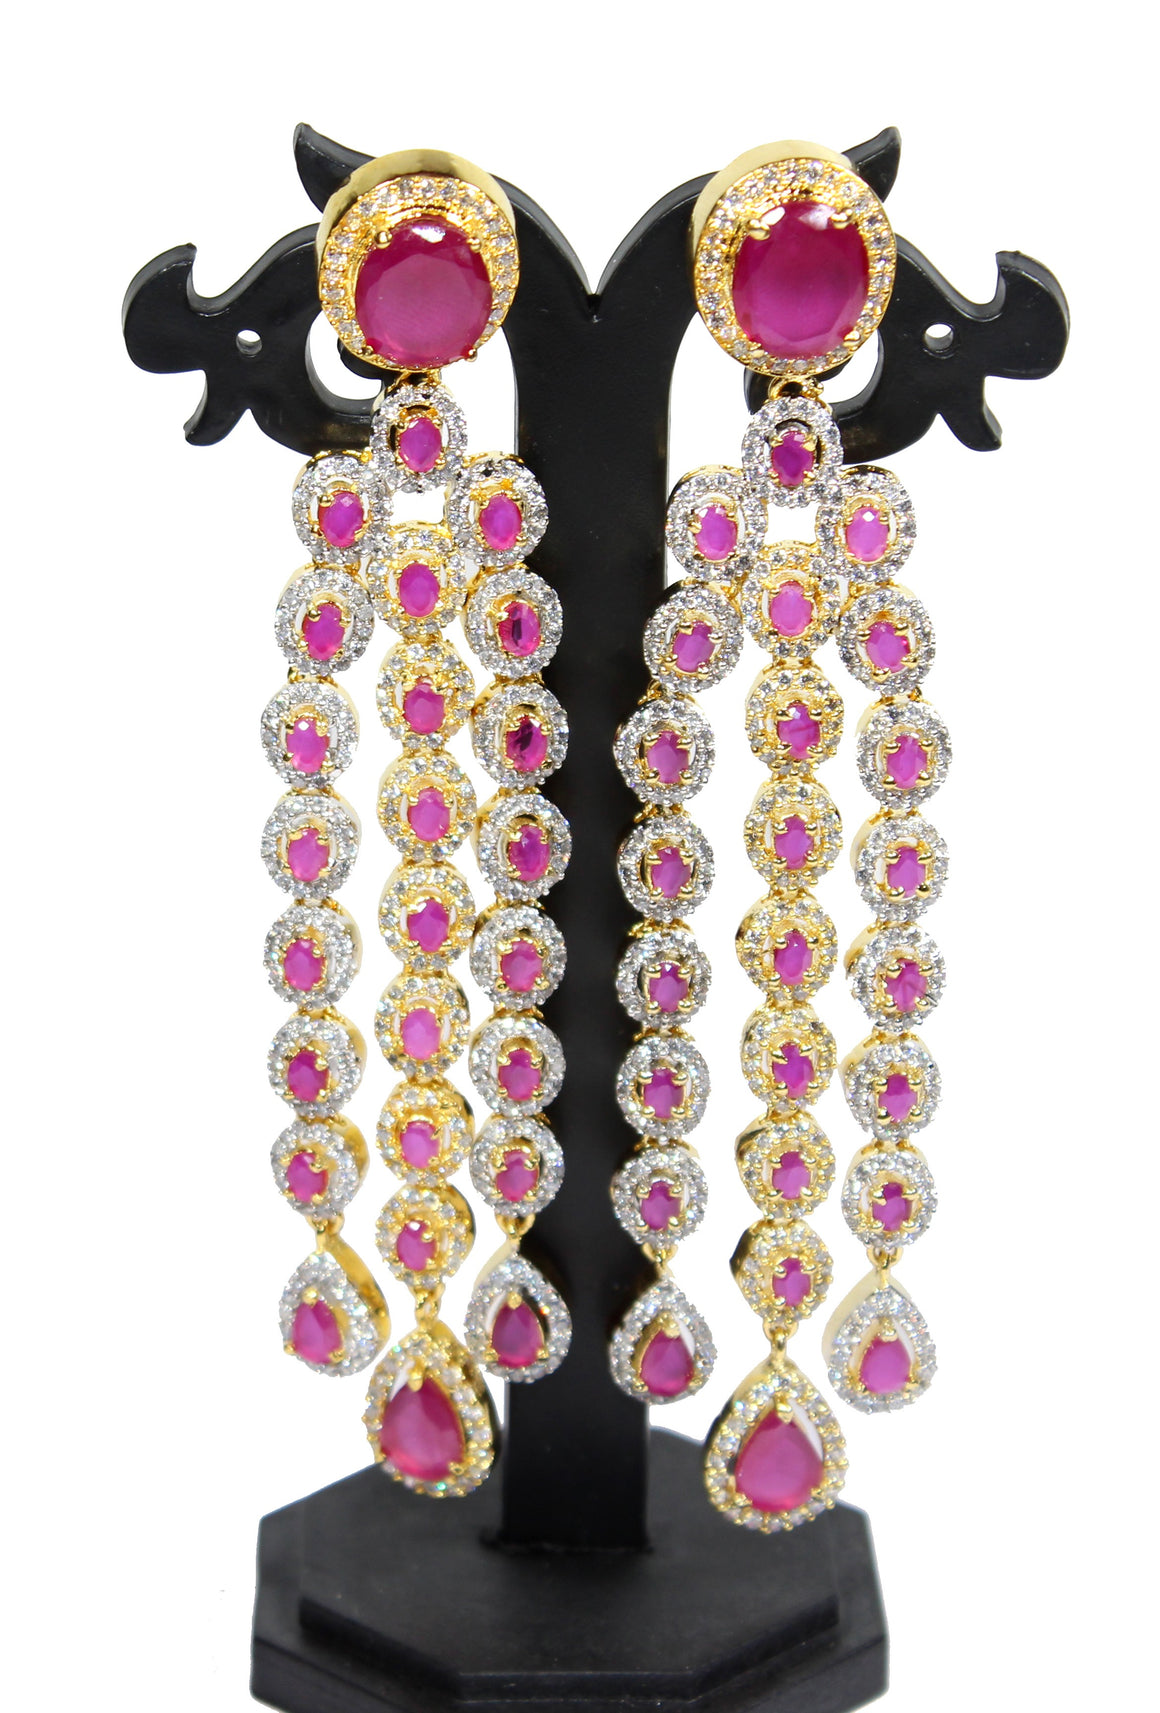 Alekip High Grade sparkling Cz Designer Earrings With Semi Precious Rubies For Woman